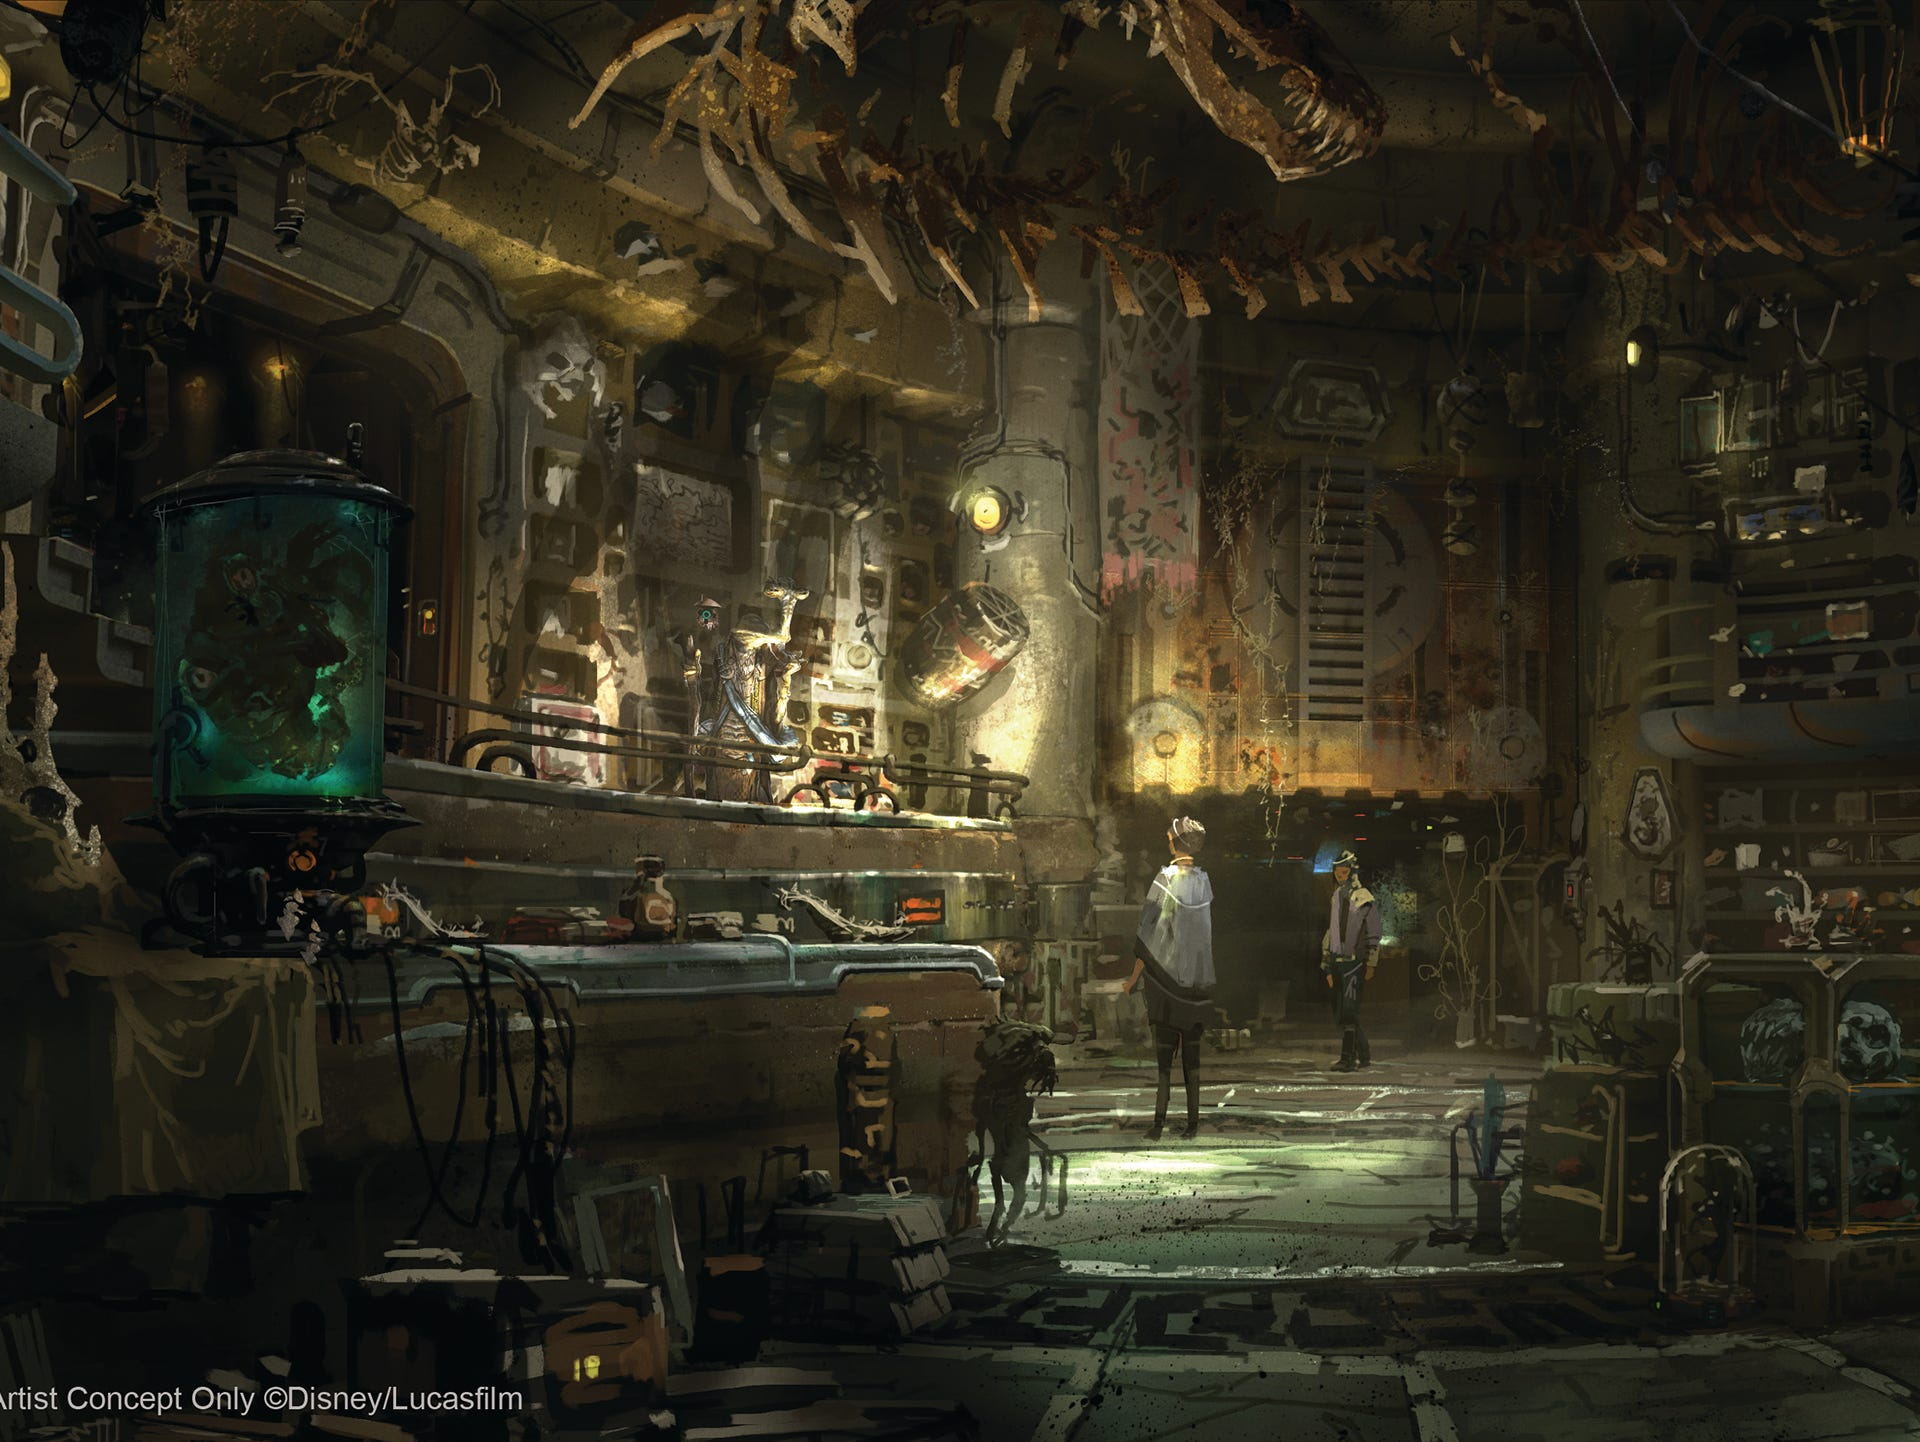 Dok-Ondar's Den of Antiquities in Star Wars: Galaxy's Edge will feature rare items from across the galaxy for sale, all part of Dok-Ondar's collection. Items will represent different eras of the Star Wars galaxy, including holocrons, ancient Jedi and Sith artifacts, lightsabers and more.